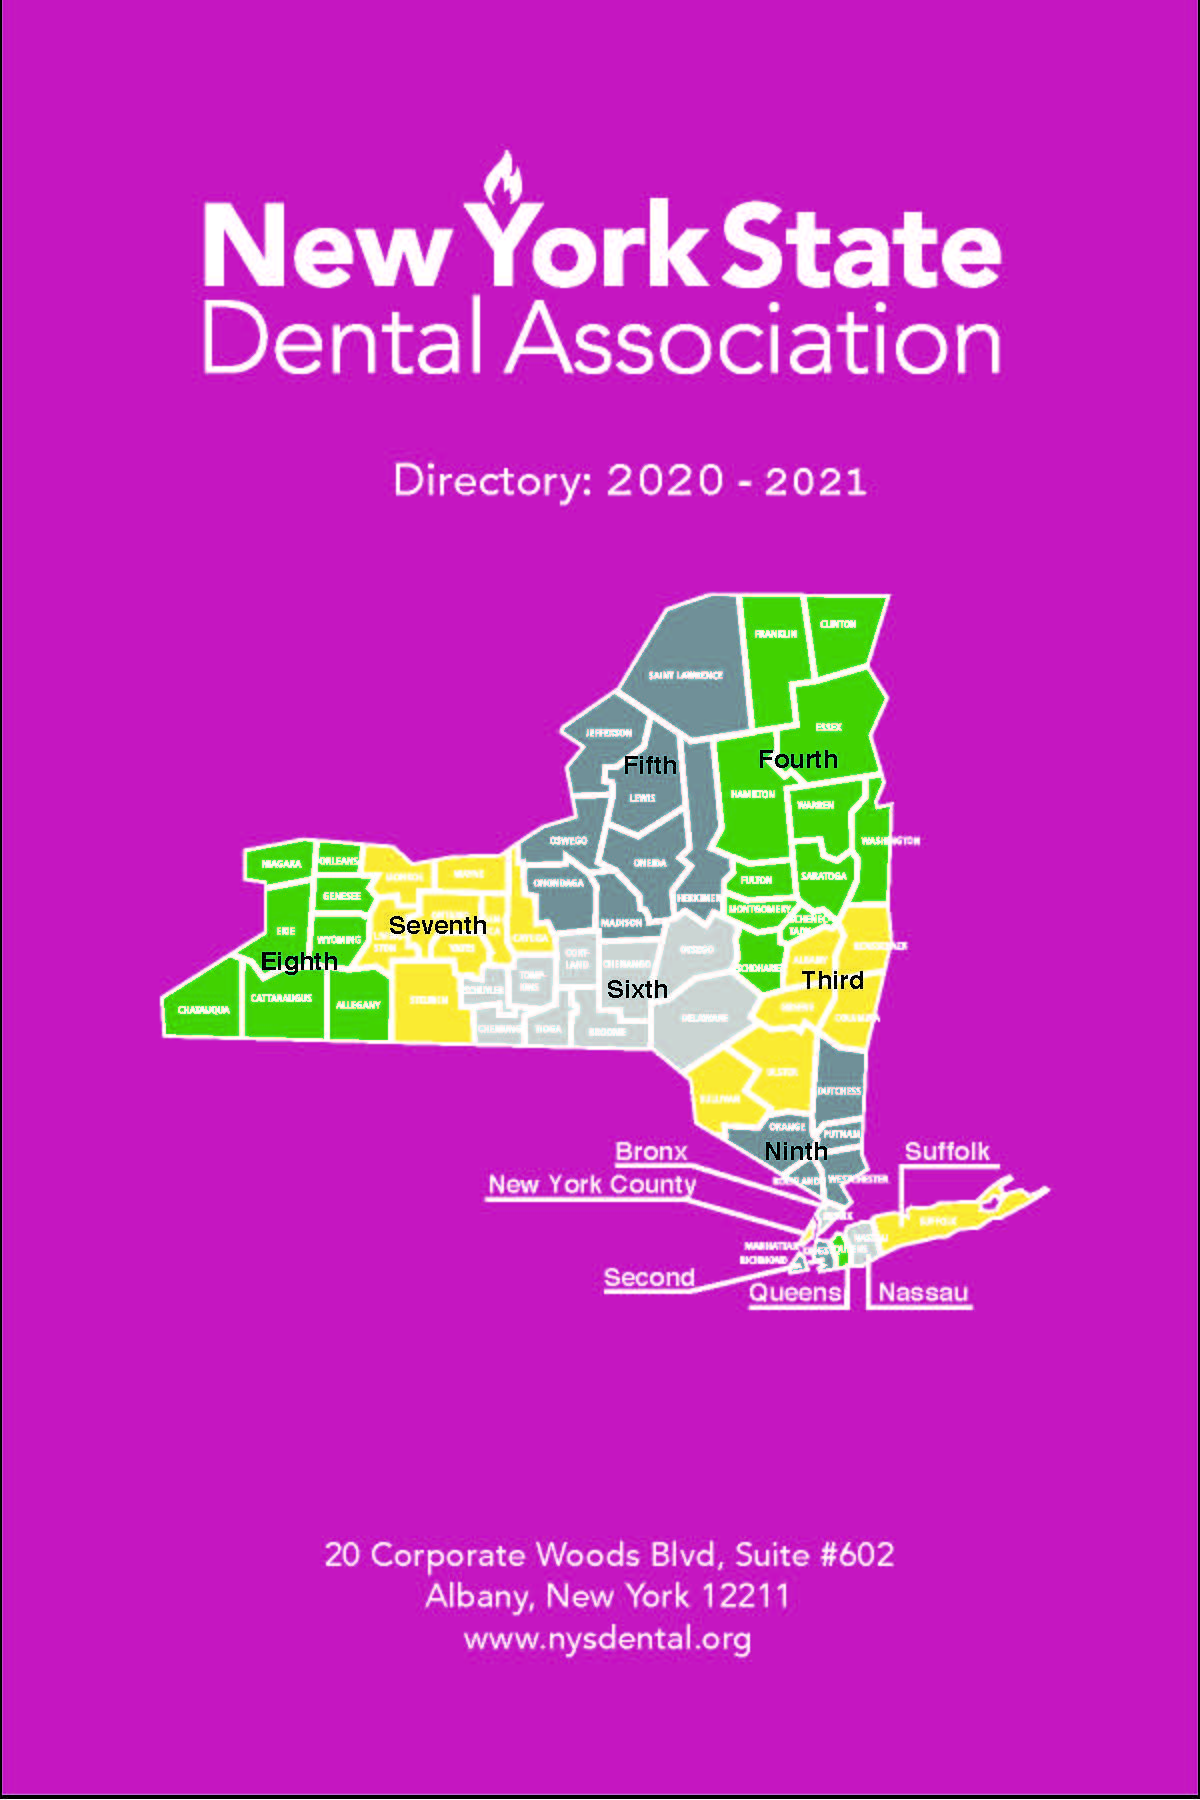 New York State Dental Association Leadership Directory 2020-2021